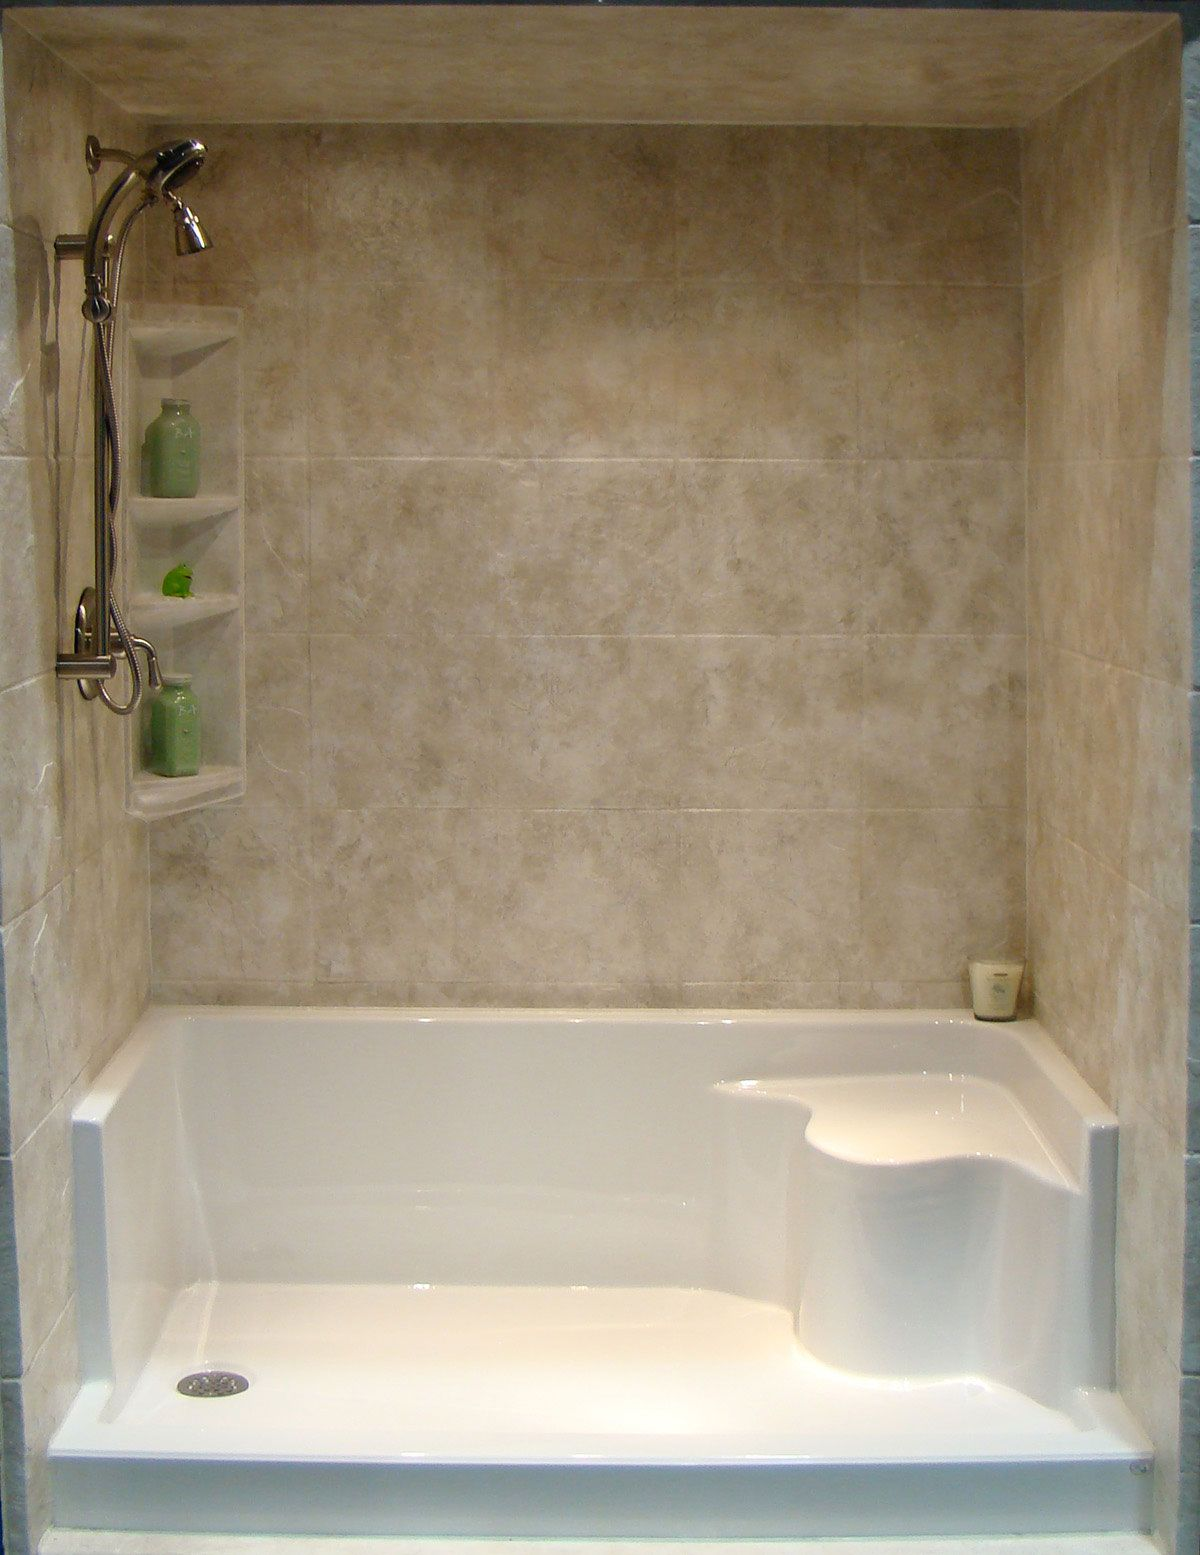 tub an shower conversion ideas bathtub refinishing tub to bathtub to shower conversions denver